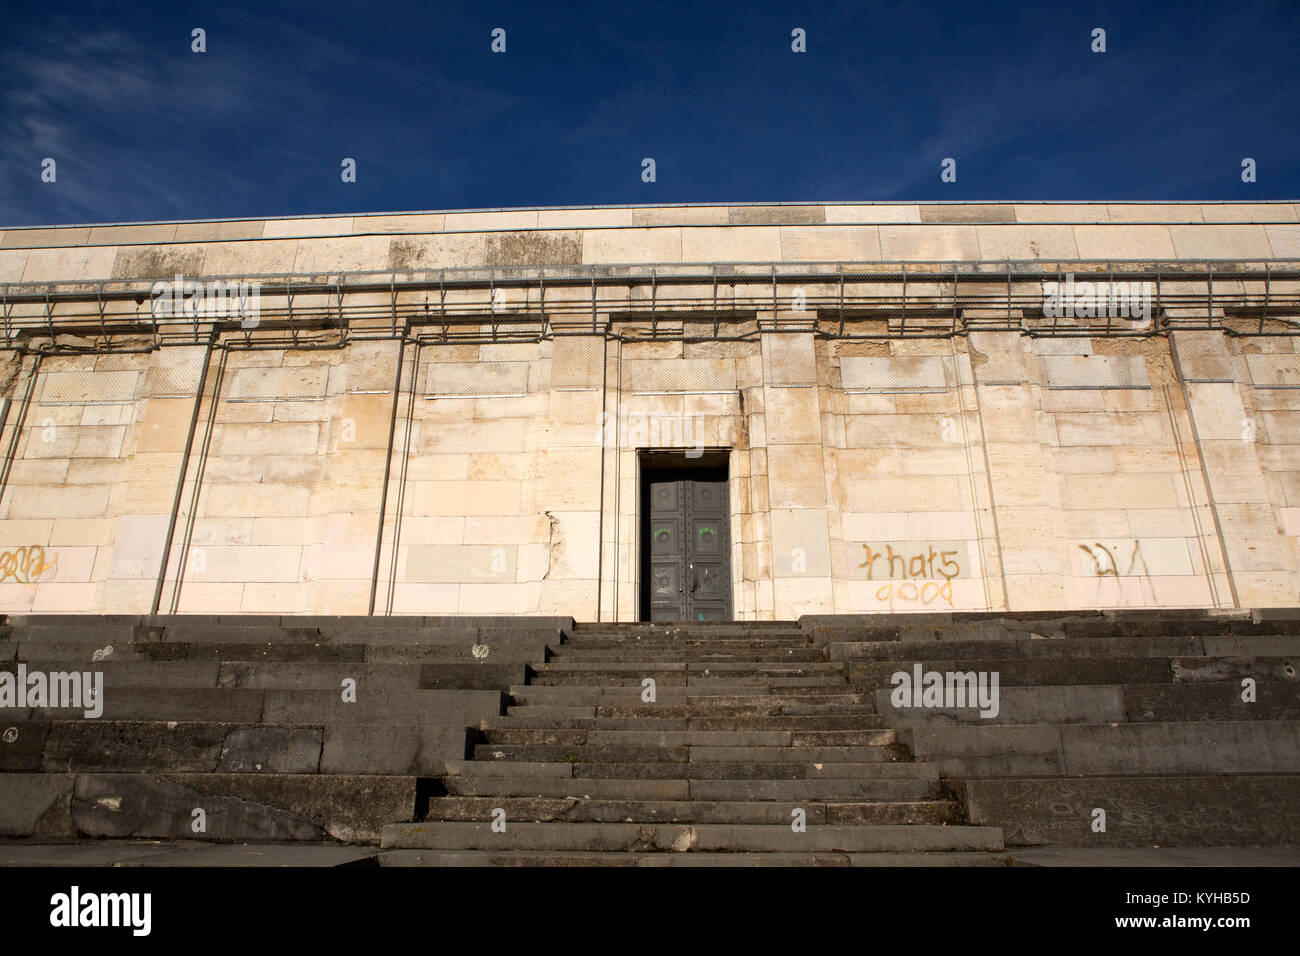 Remnants of the Fuehrer's Rostrum at the Zeppelin Field in Nurermberg, Germany. - Stock Image